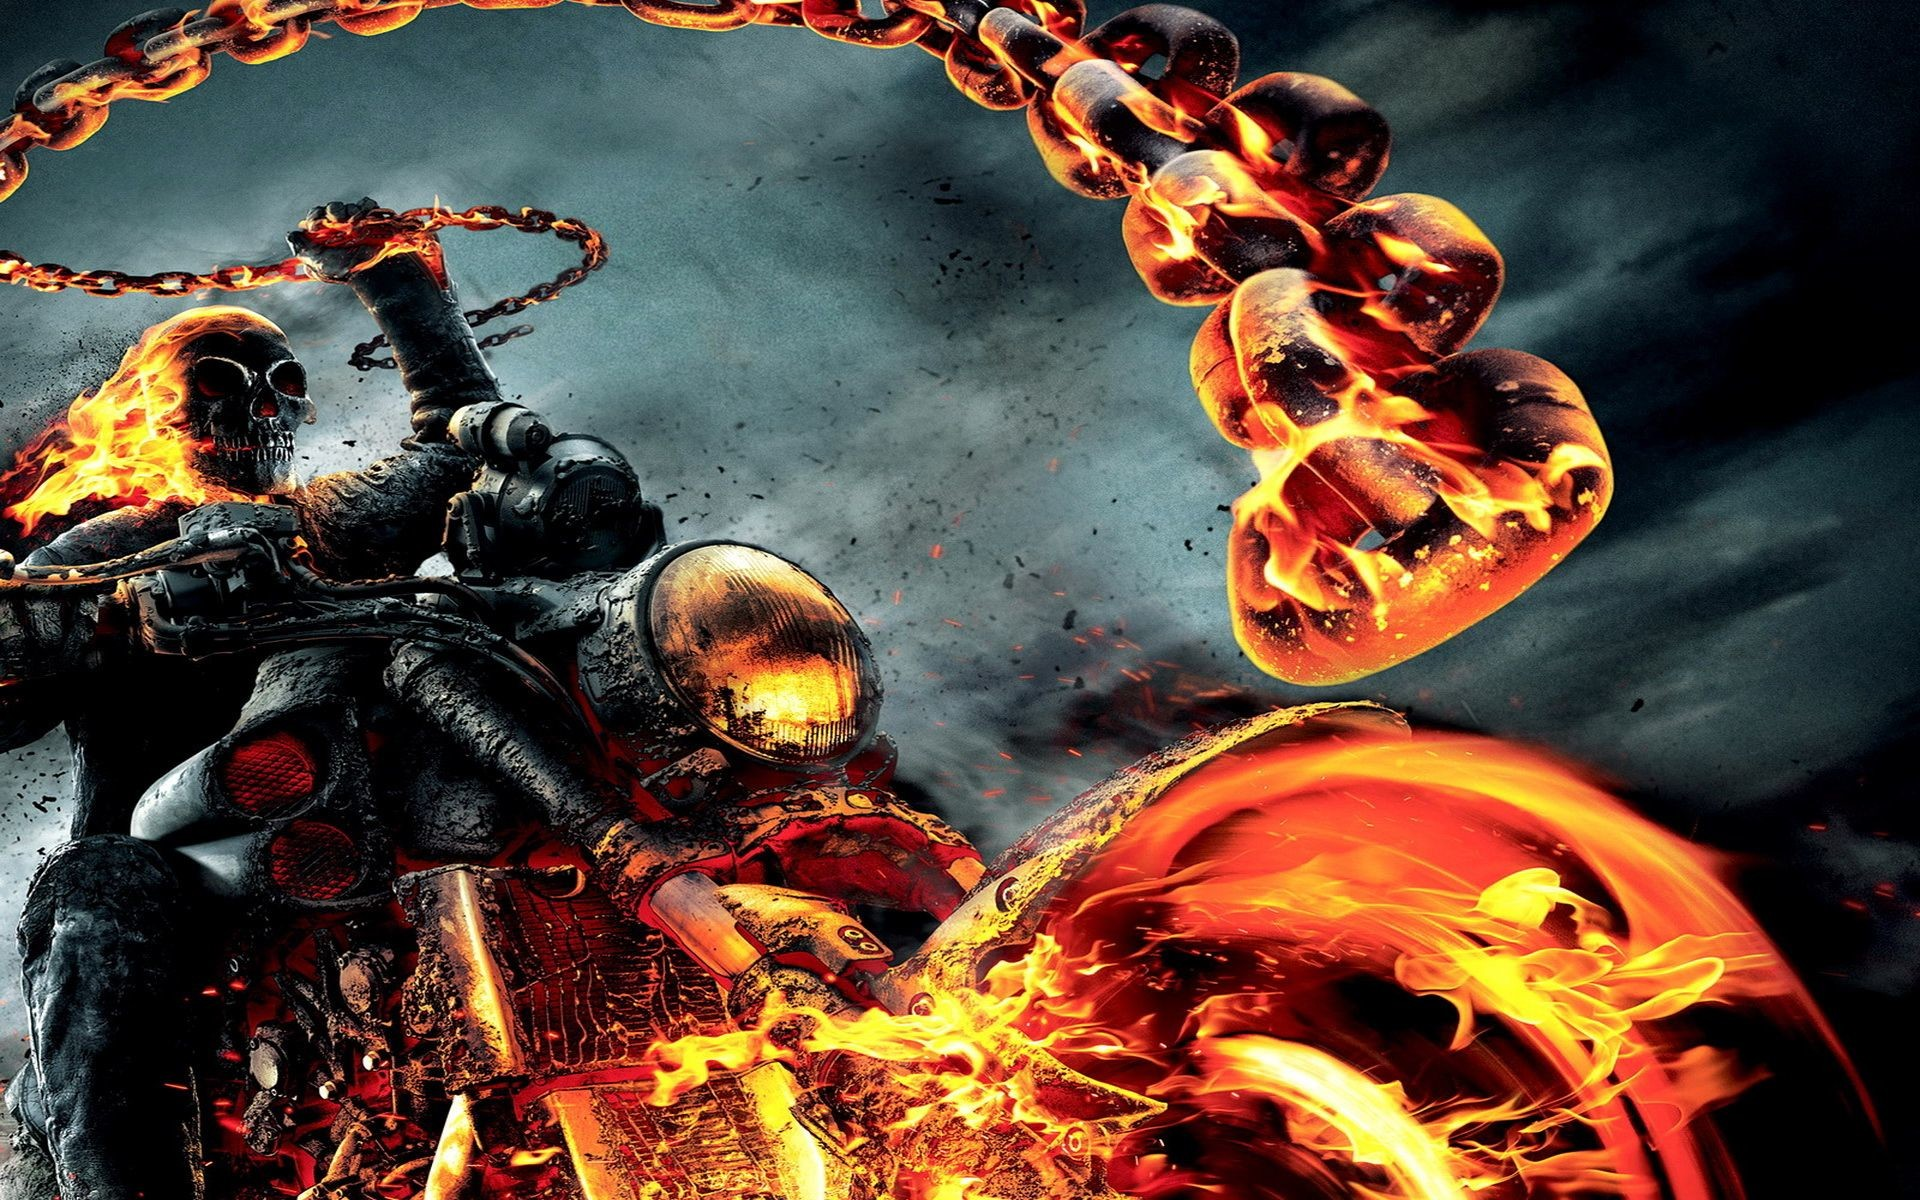 1920x1080 The Ghost Rider Images HD Wallpaper And Background Photos